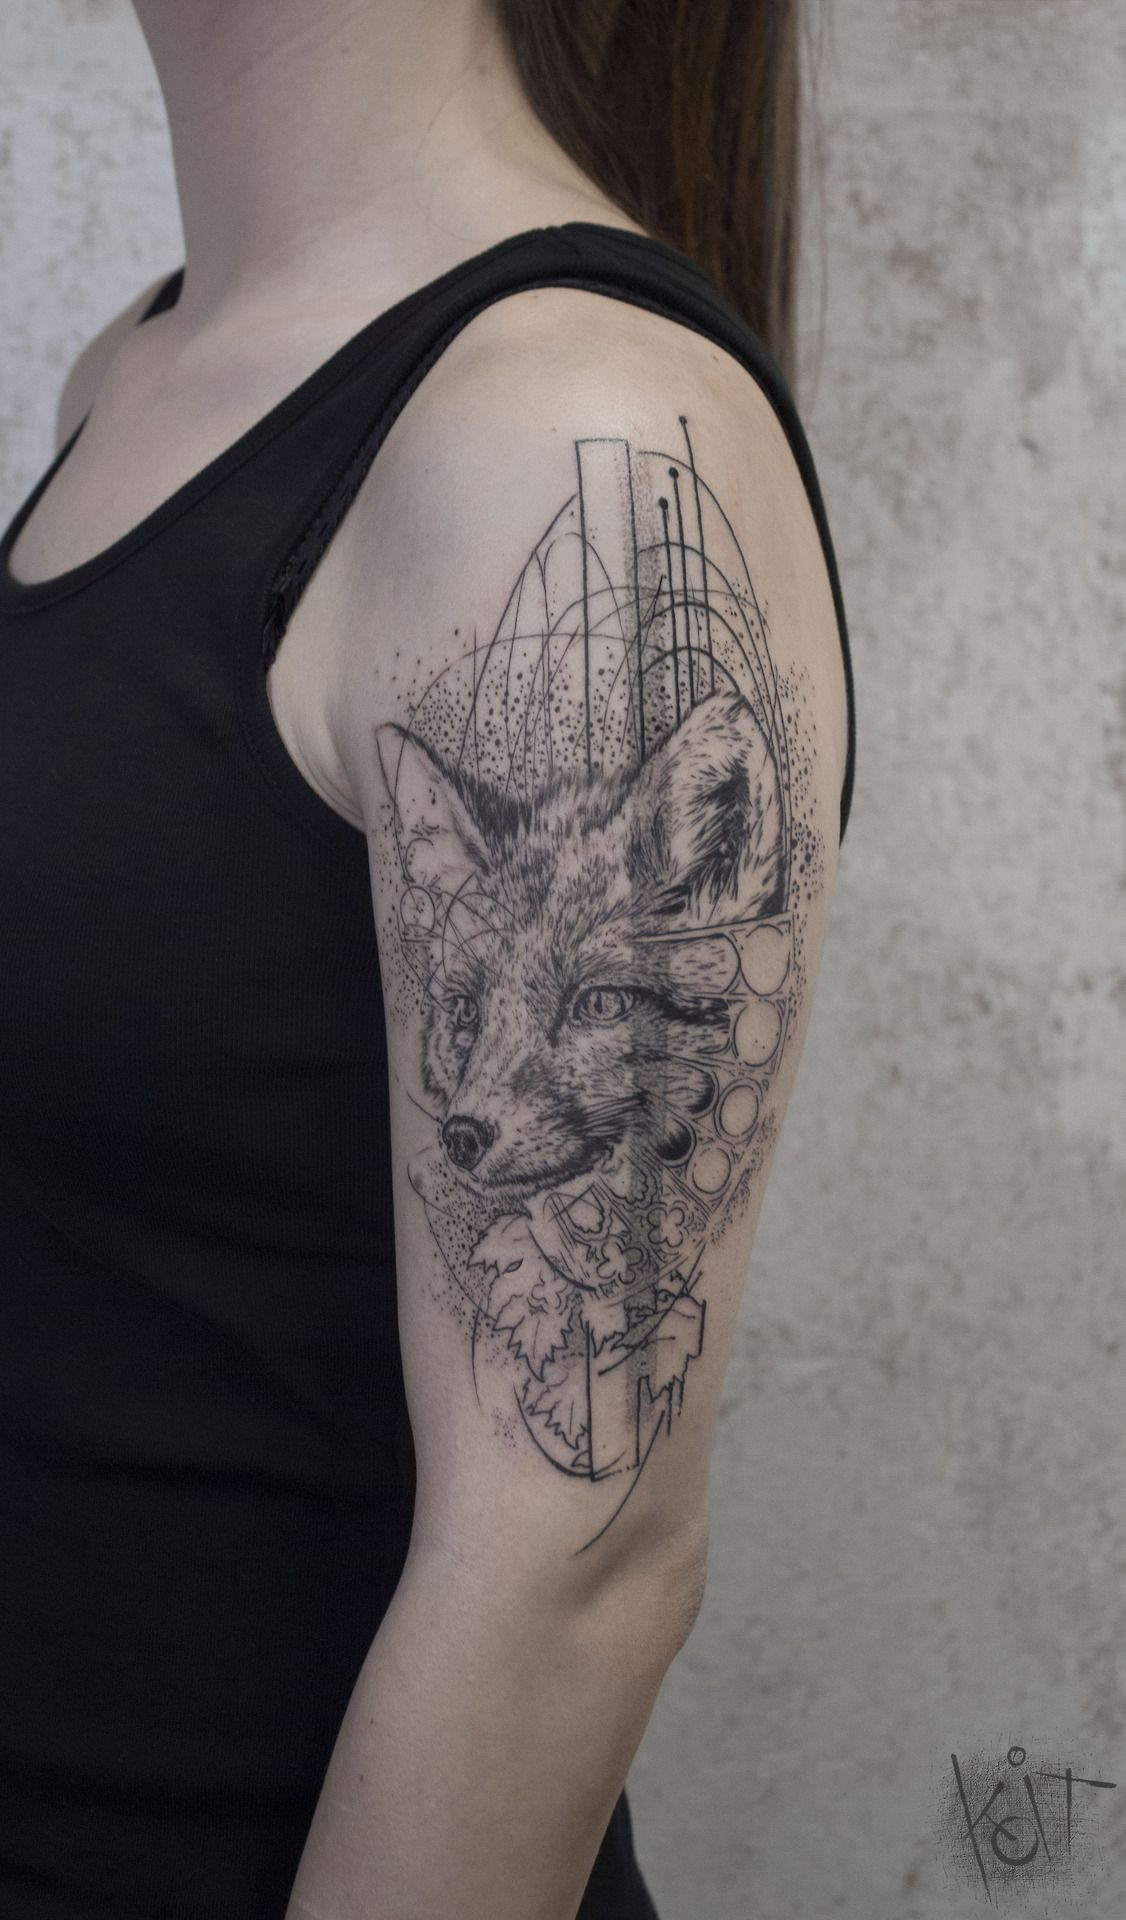 Terrific Graphic Tattoos On Arm For Men Sleeve Tattoos Tattoos For Guys Tech Tattoo